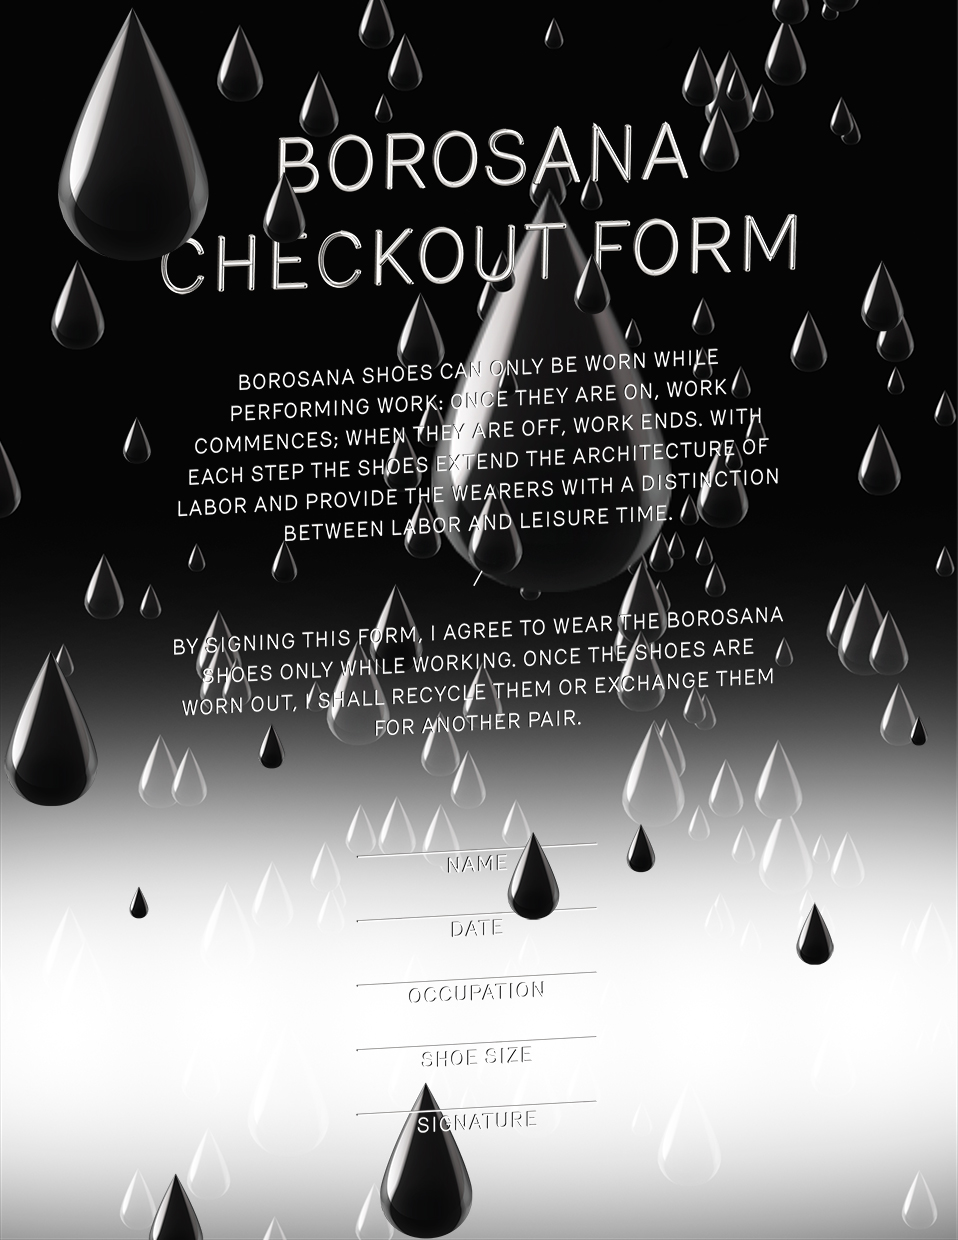 Irena Haiduk, Nine Hour Delay, Bureaucratic Document One: Borosana Checkout Form, 2013, two sided, A4